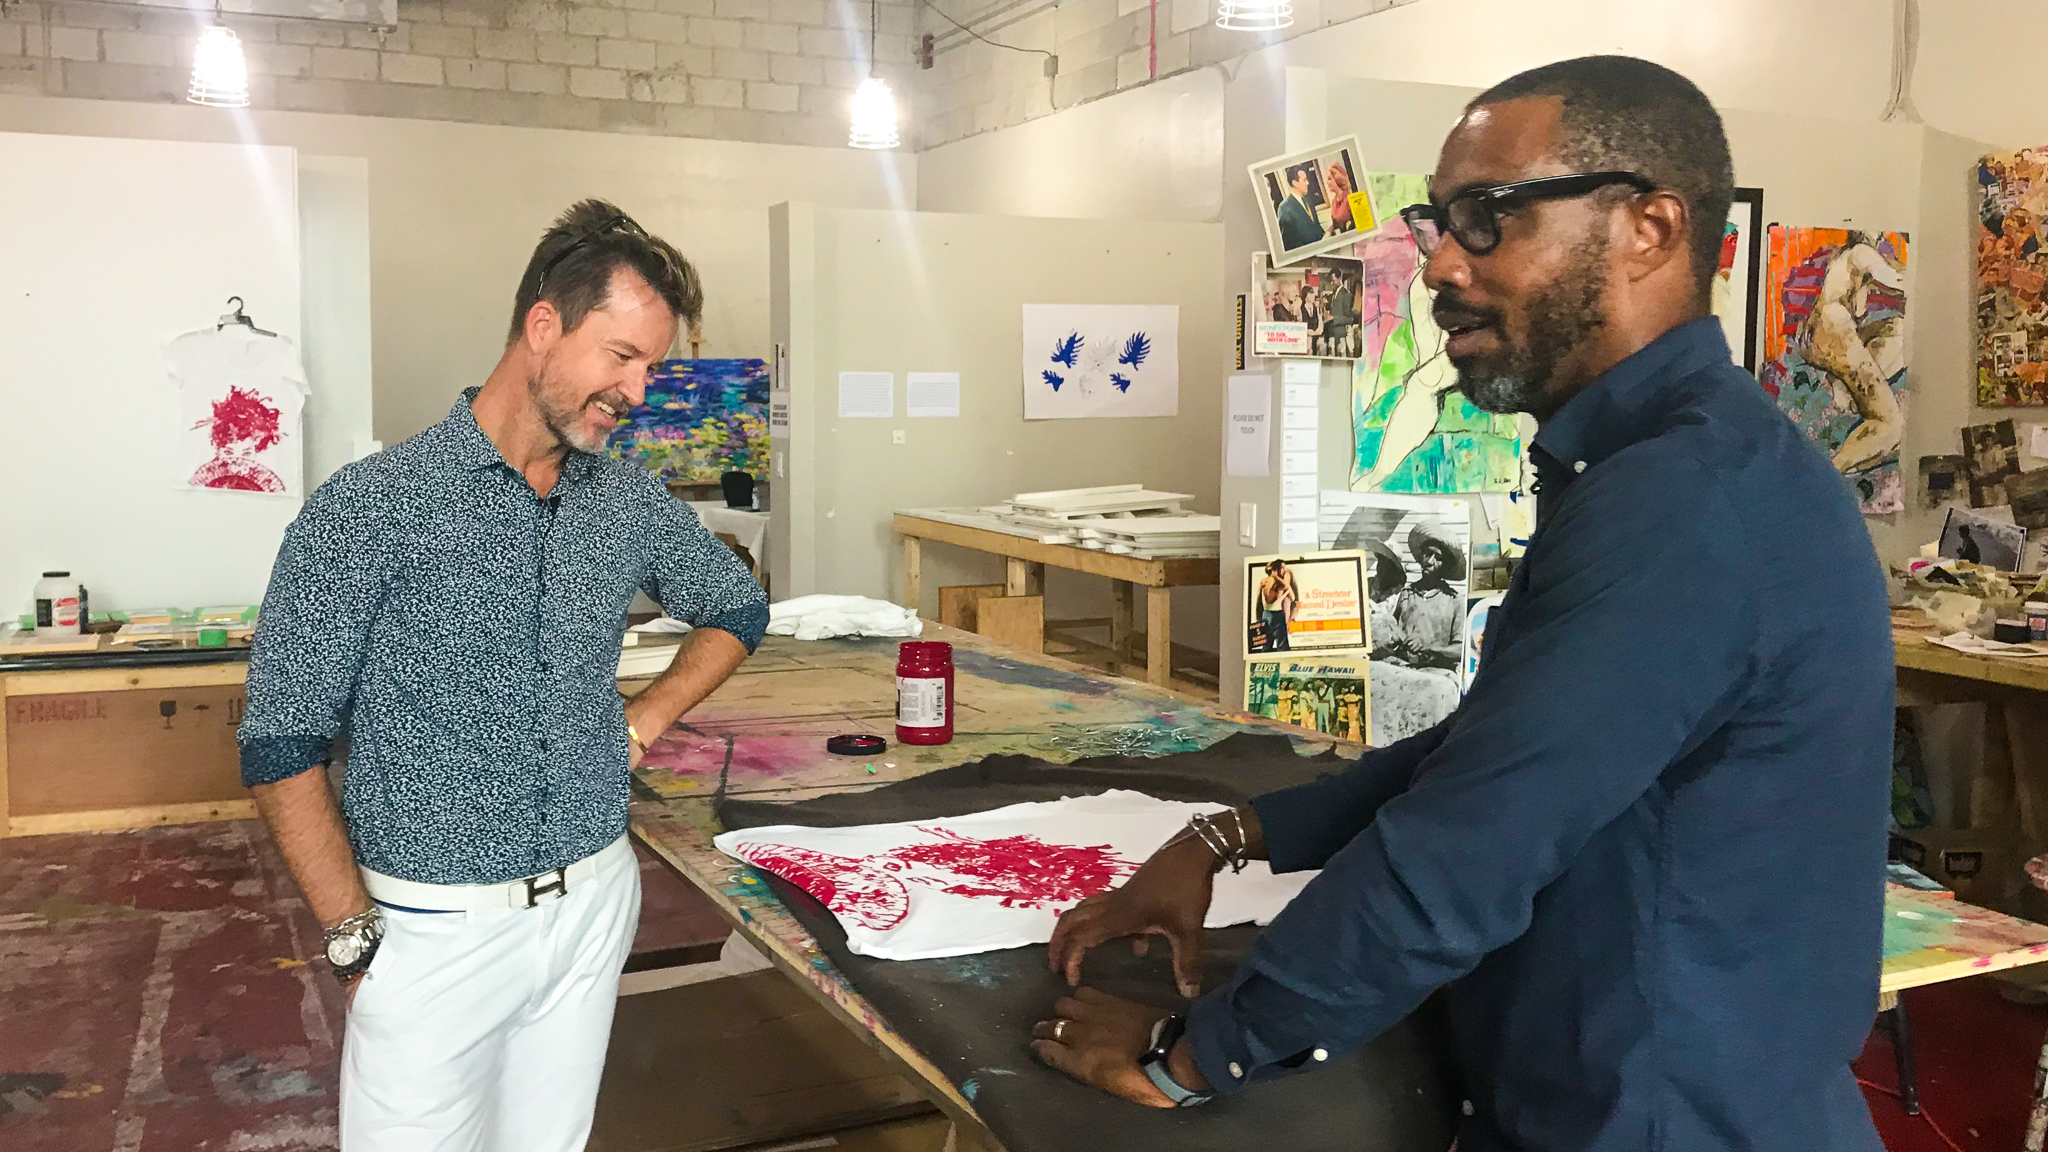 Shawn M.Sawyer and John Cox standing in admiration of a screen printing completed in The studio.